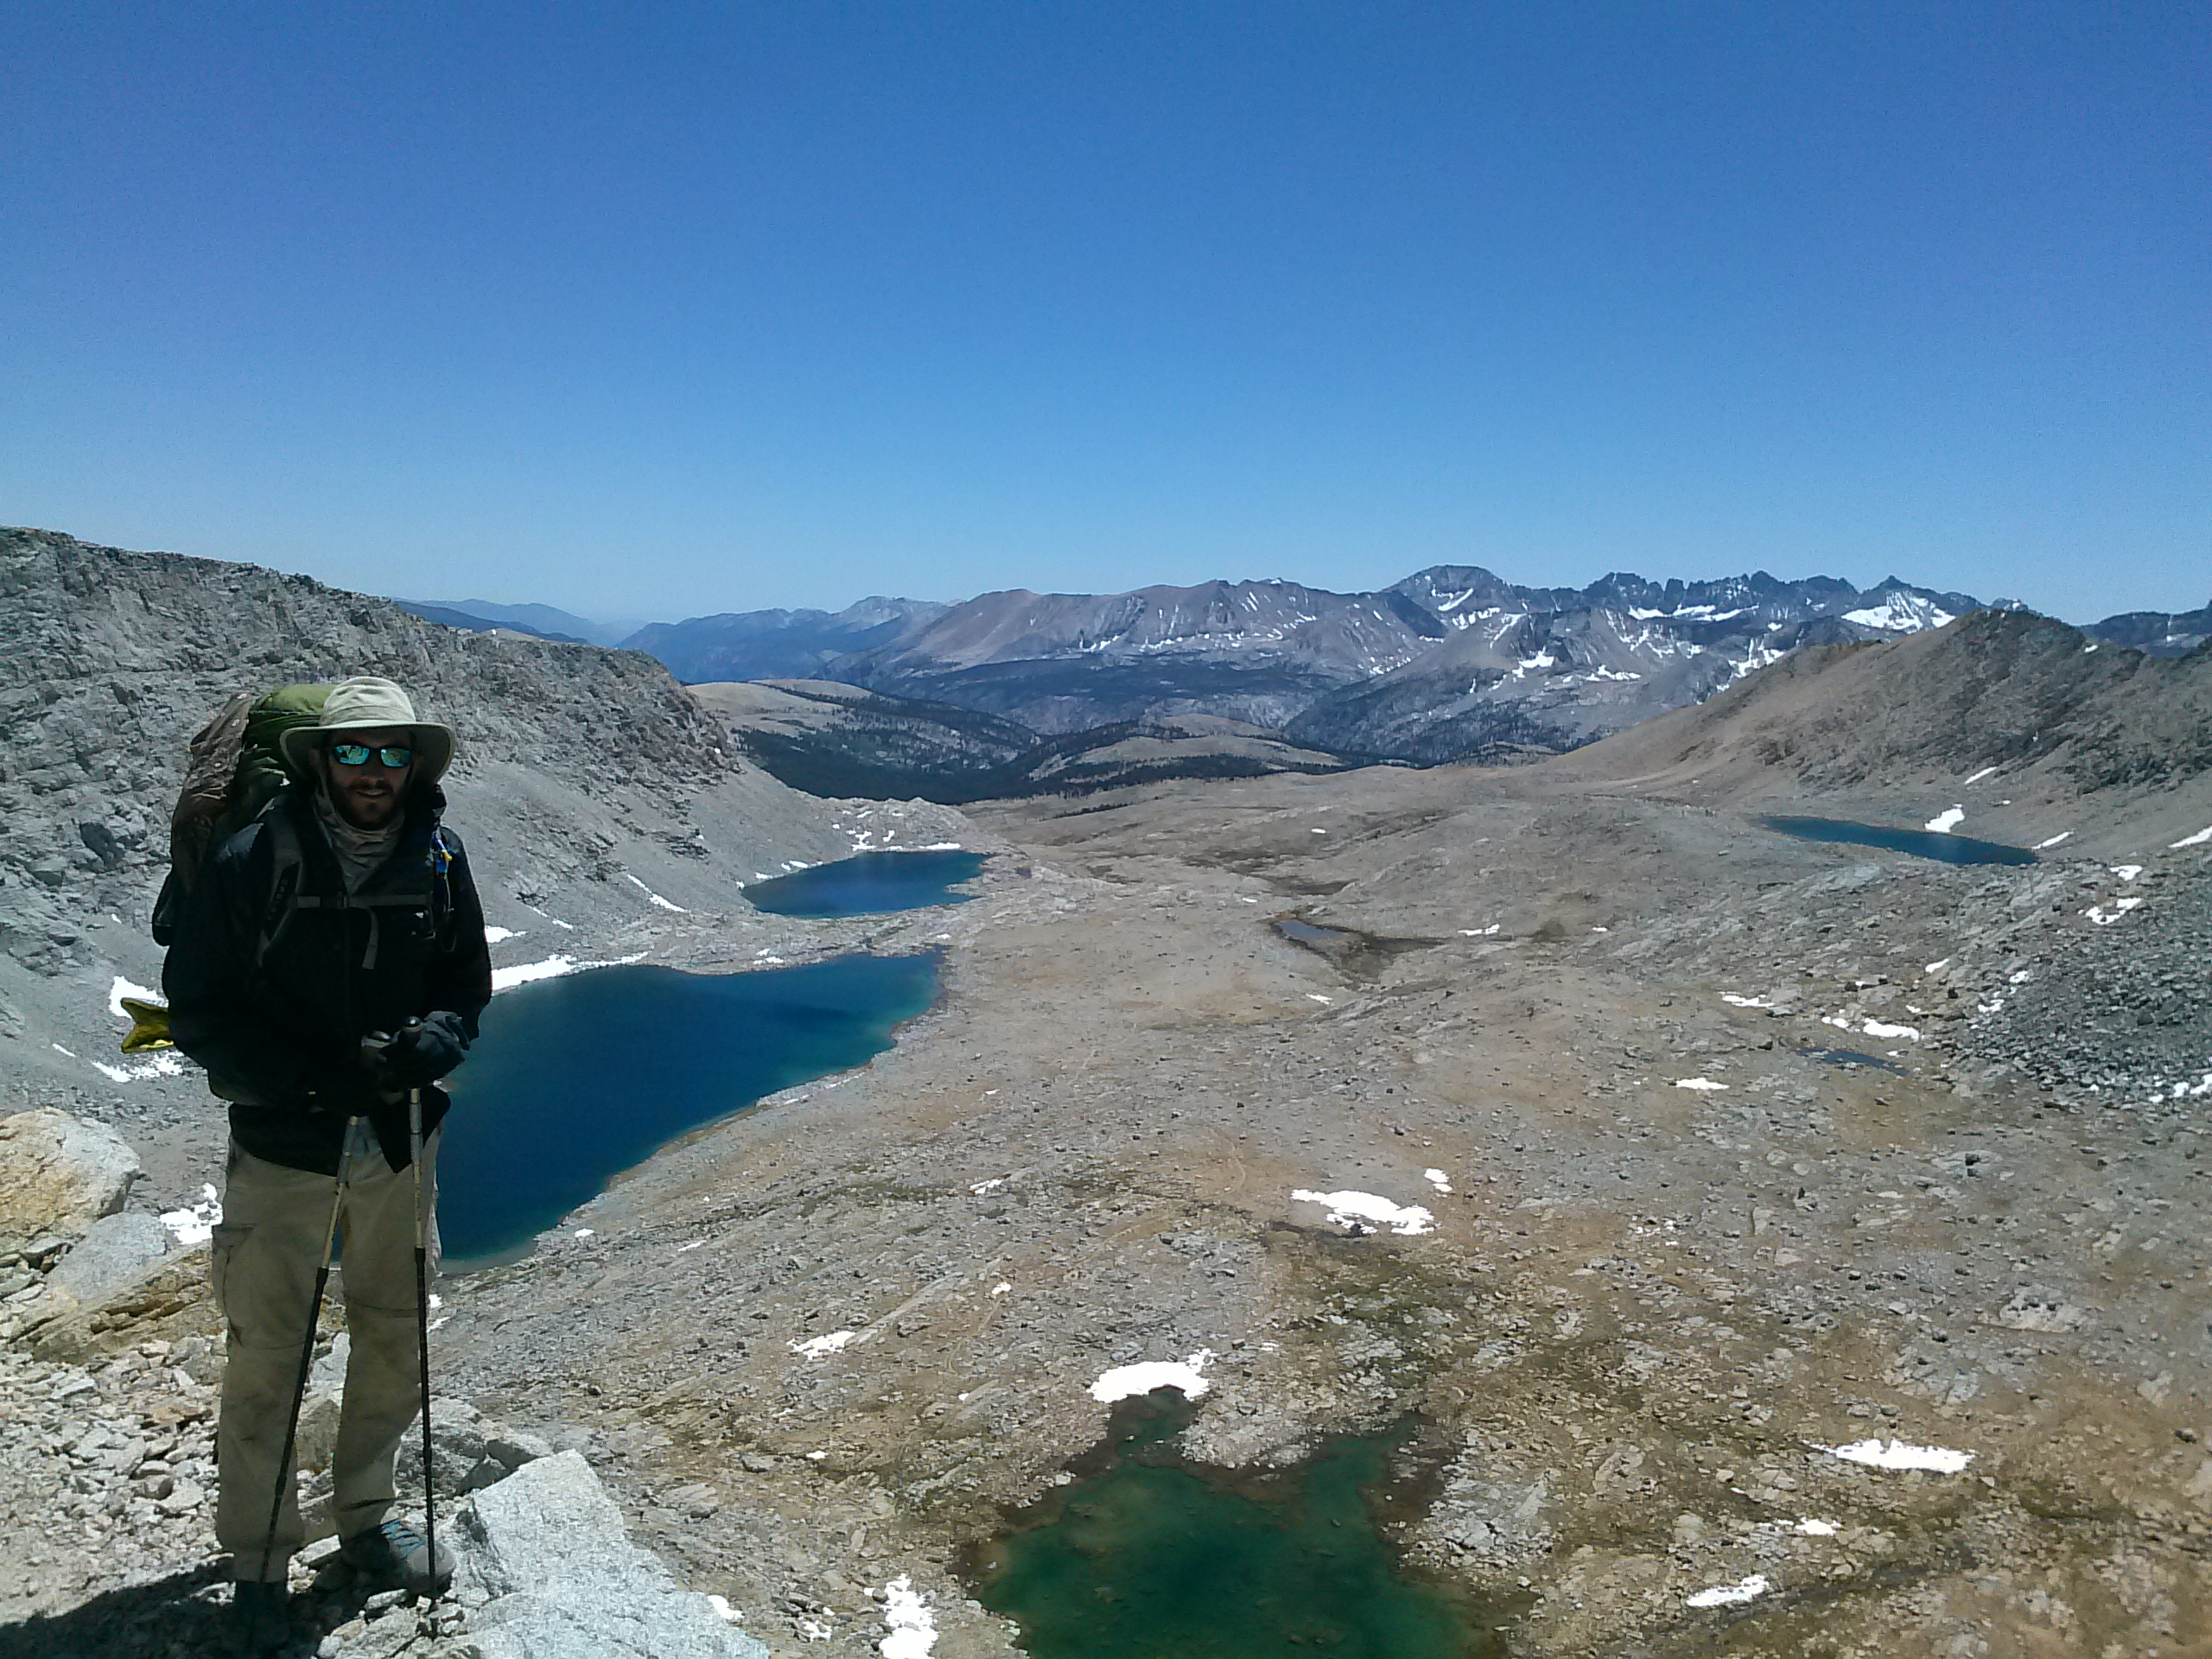 Forester Pass - Pacific Crest Trail